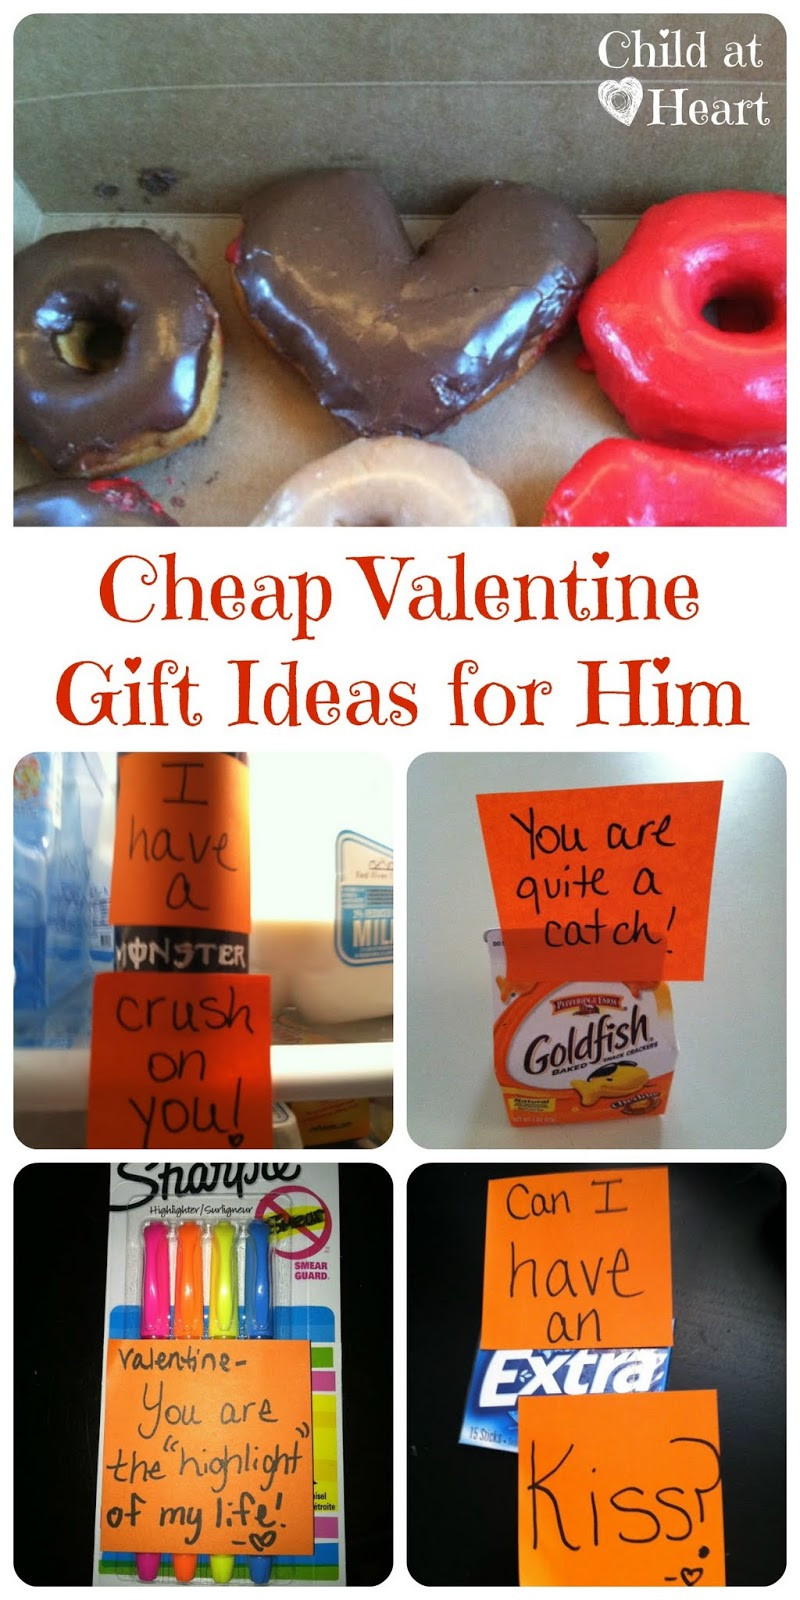 Best ideas about Valentine'S Day Gift Ideas For Your Boyfriend . Save or Pin Cheap Valentine Gift Ideas for Him Child at Heart Blog Now.